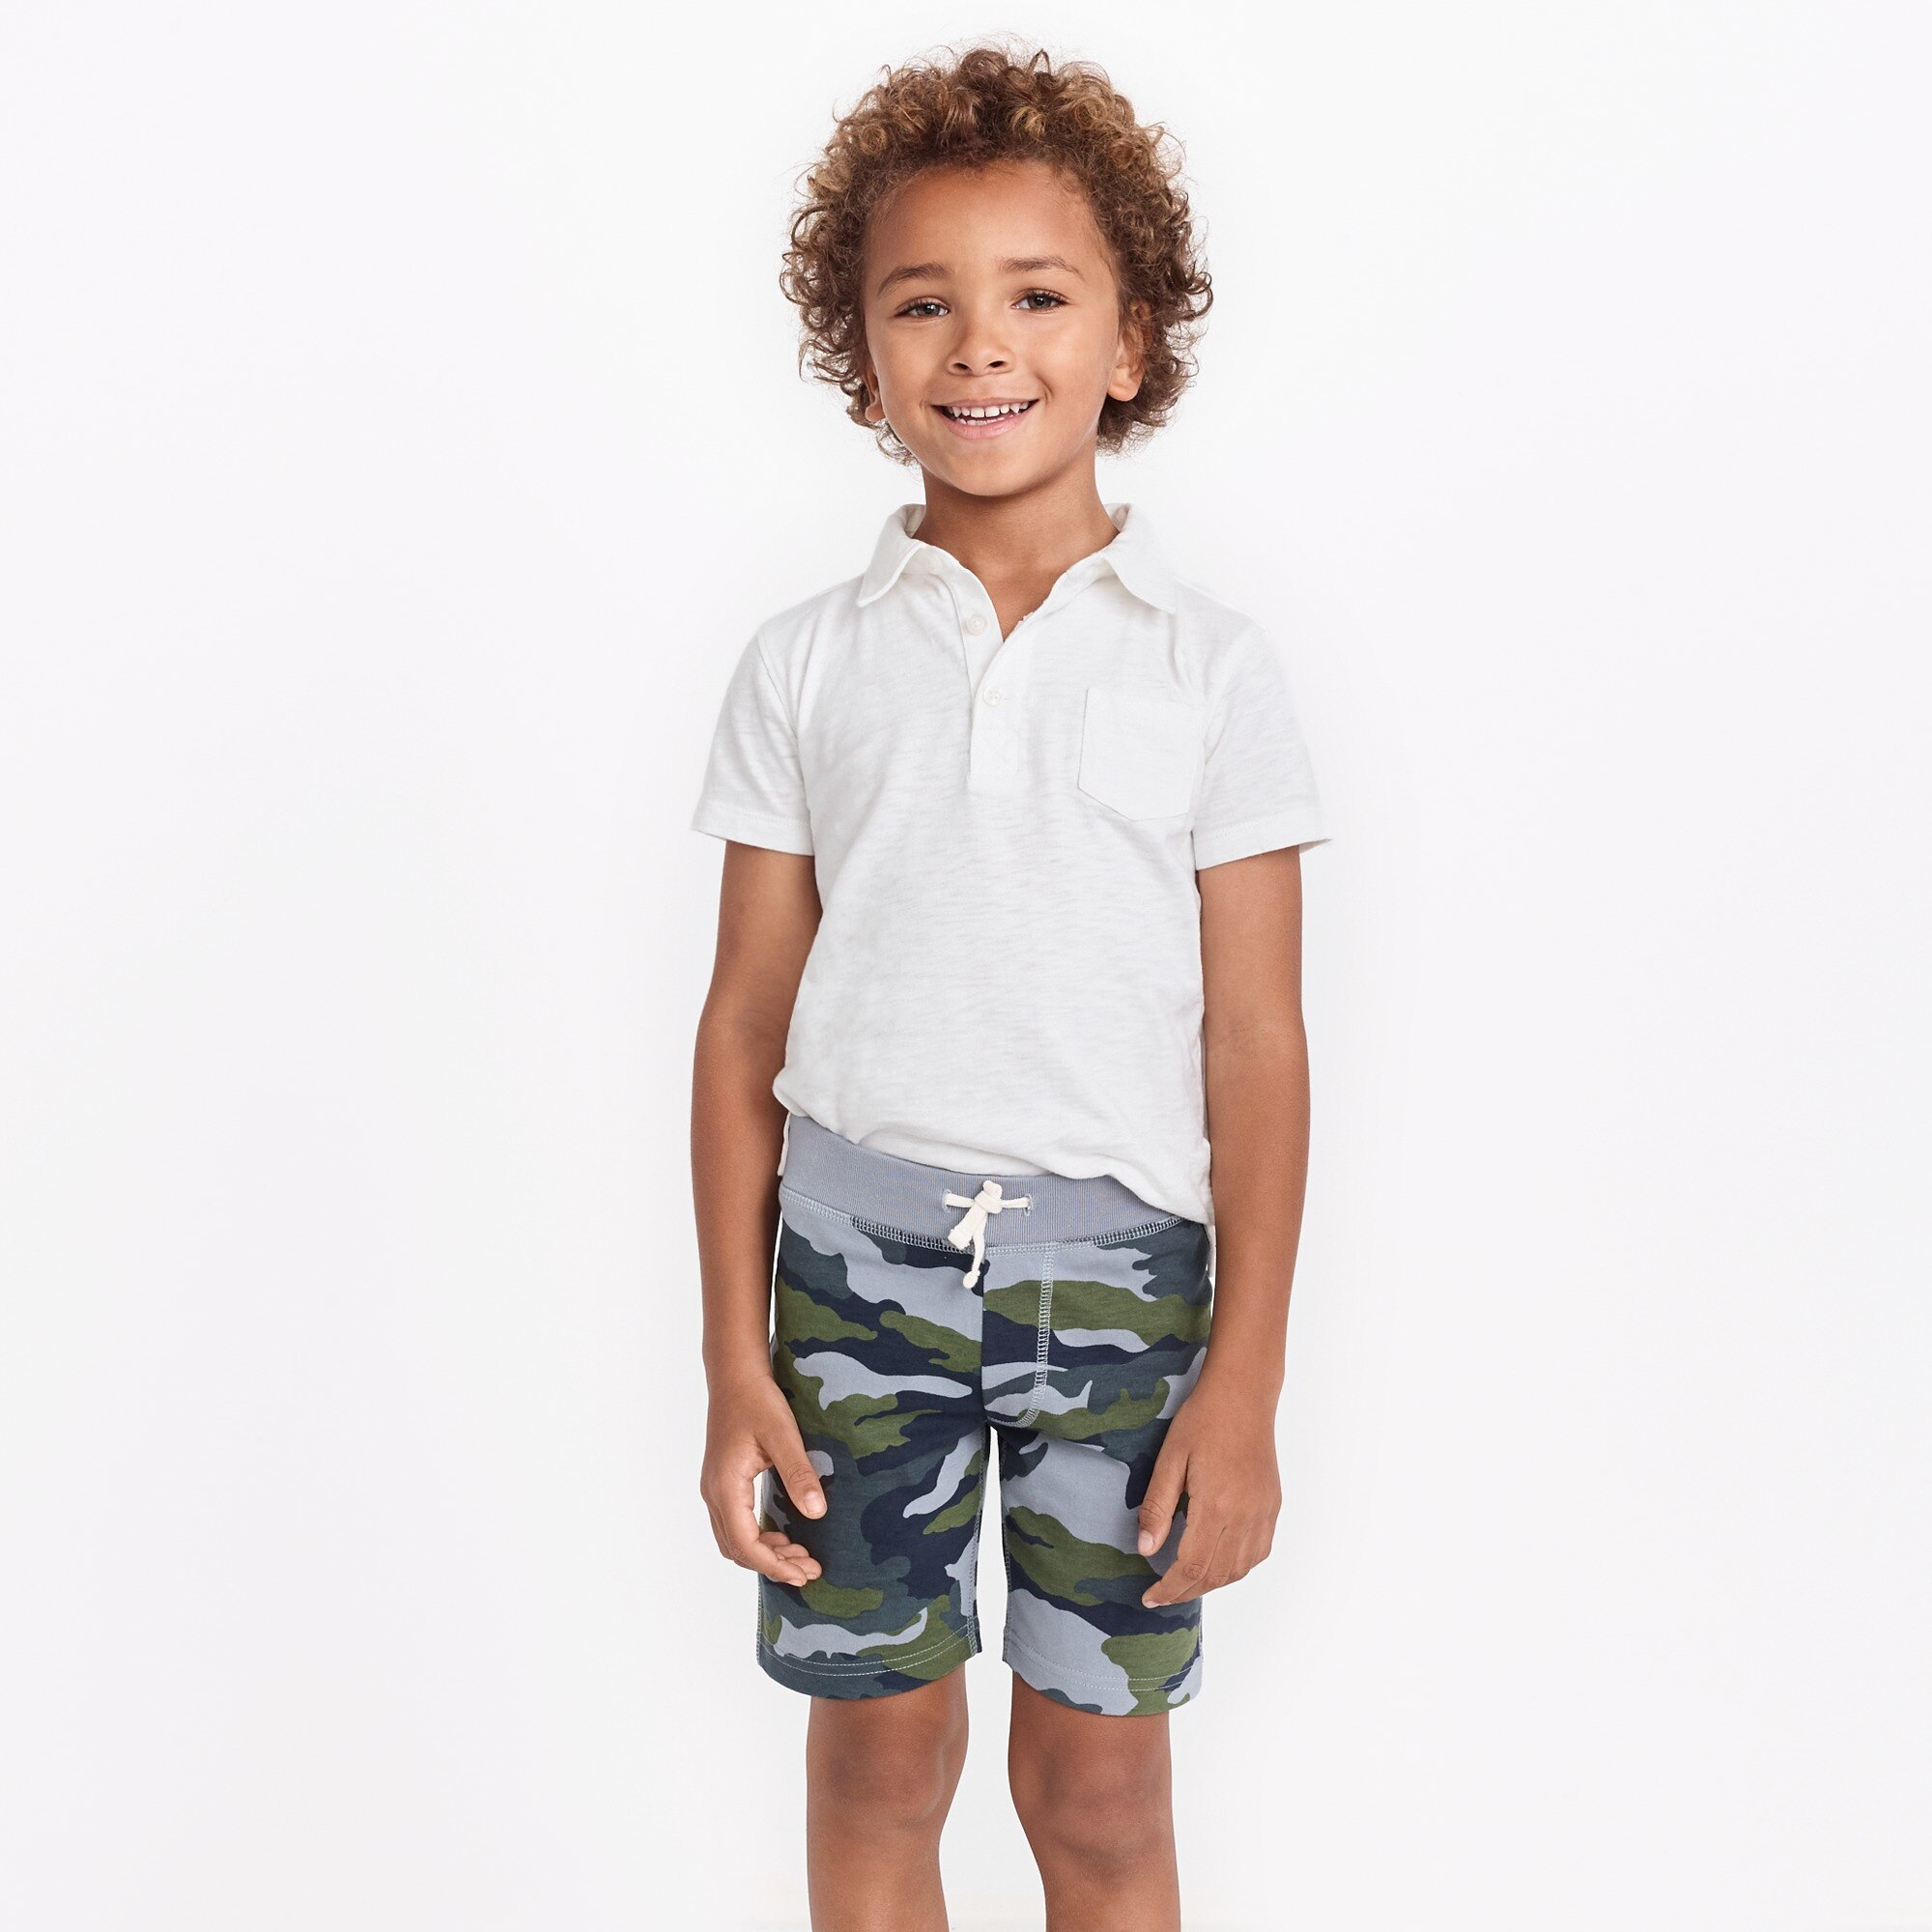 Boys' camo knit short factoryboys the camp shop c